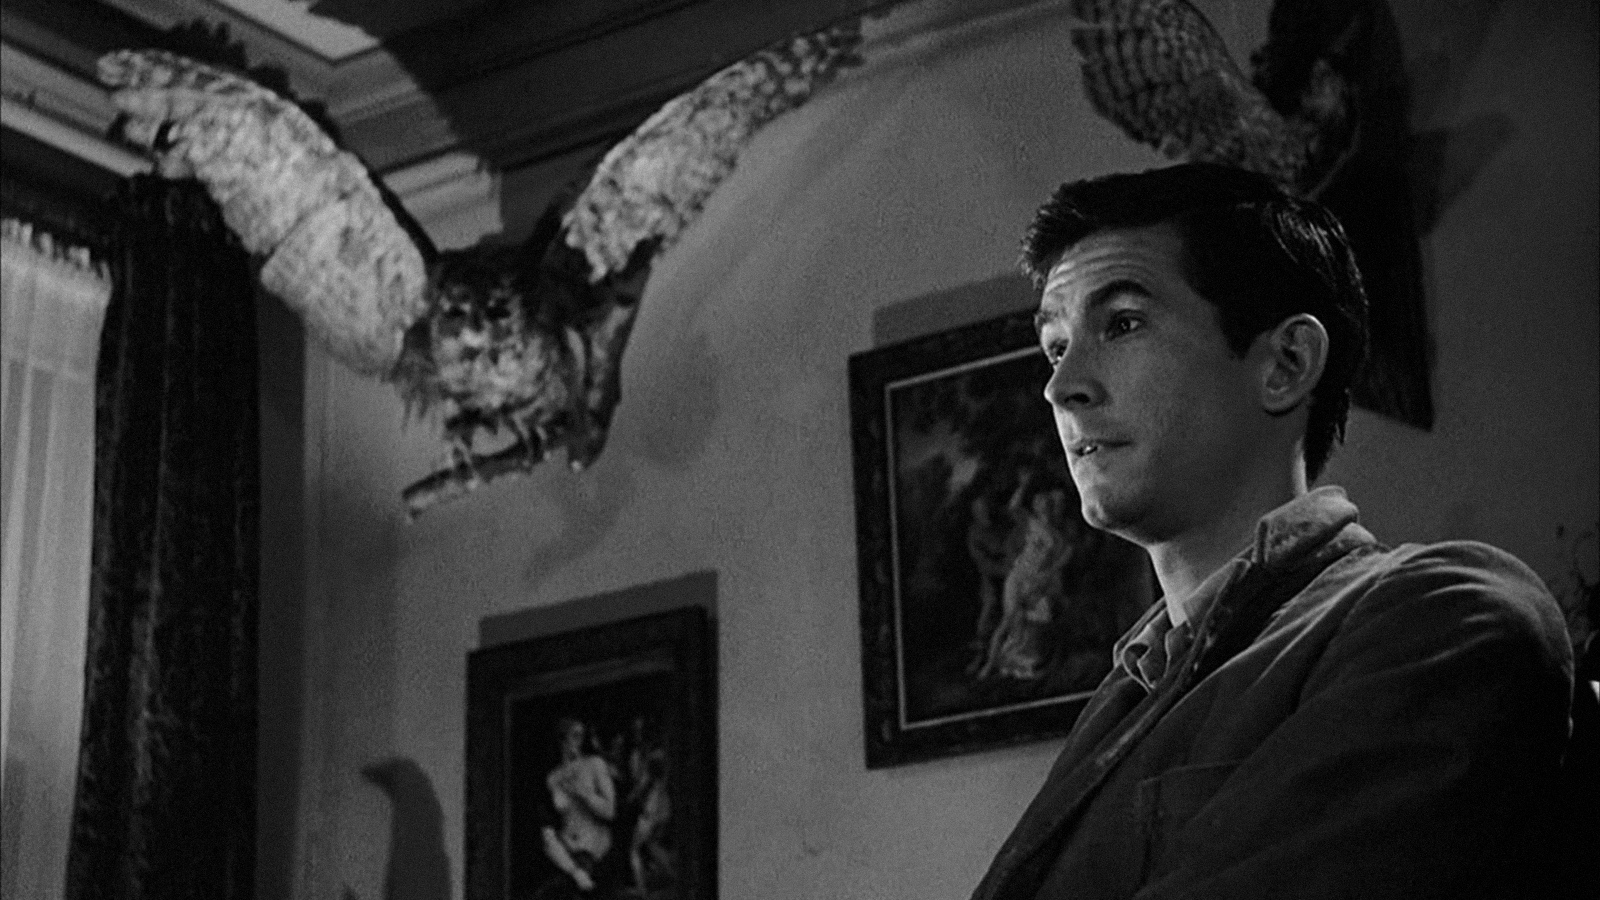 an analysis of psycho by alfred hitchcock Horror directed by alfred hitchcock  psycho janet leigh 1960 paramount  john gavin and janet leigh in  17 of 18 people found this review helpful.